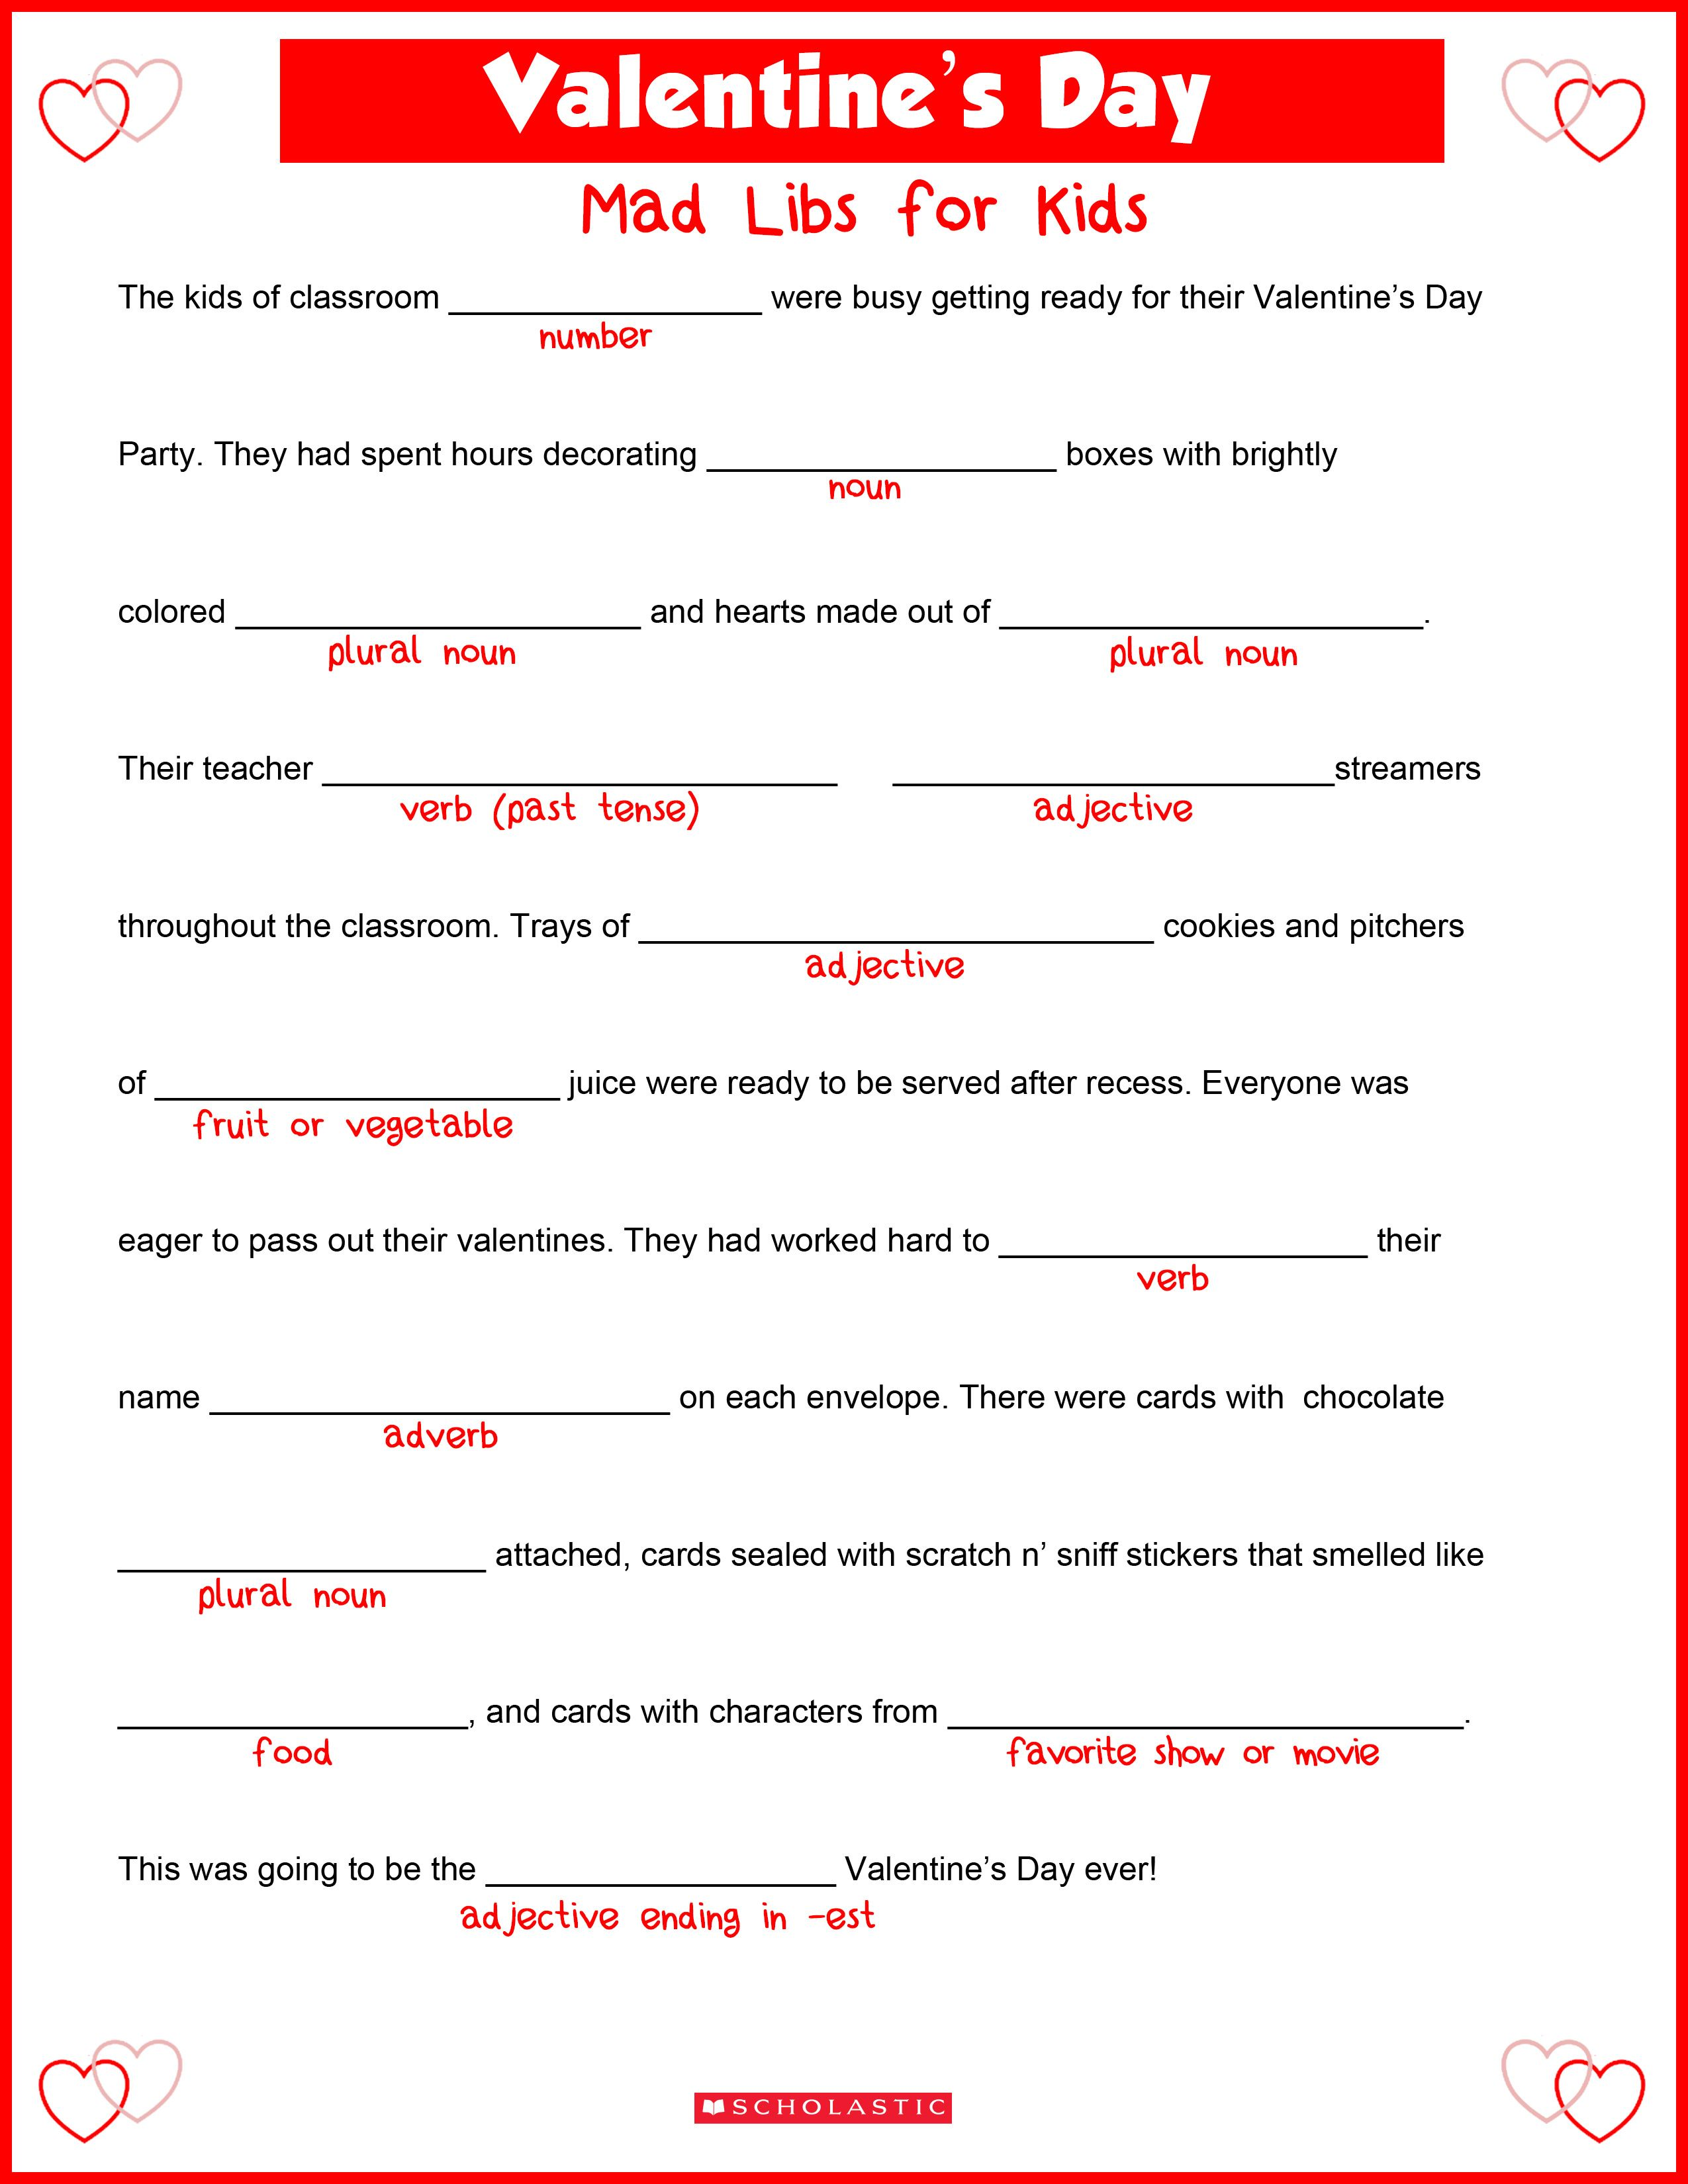 Your kids will fall in love with this Valentine's Day mad libs ...